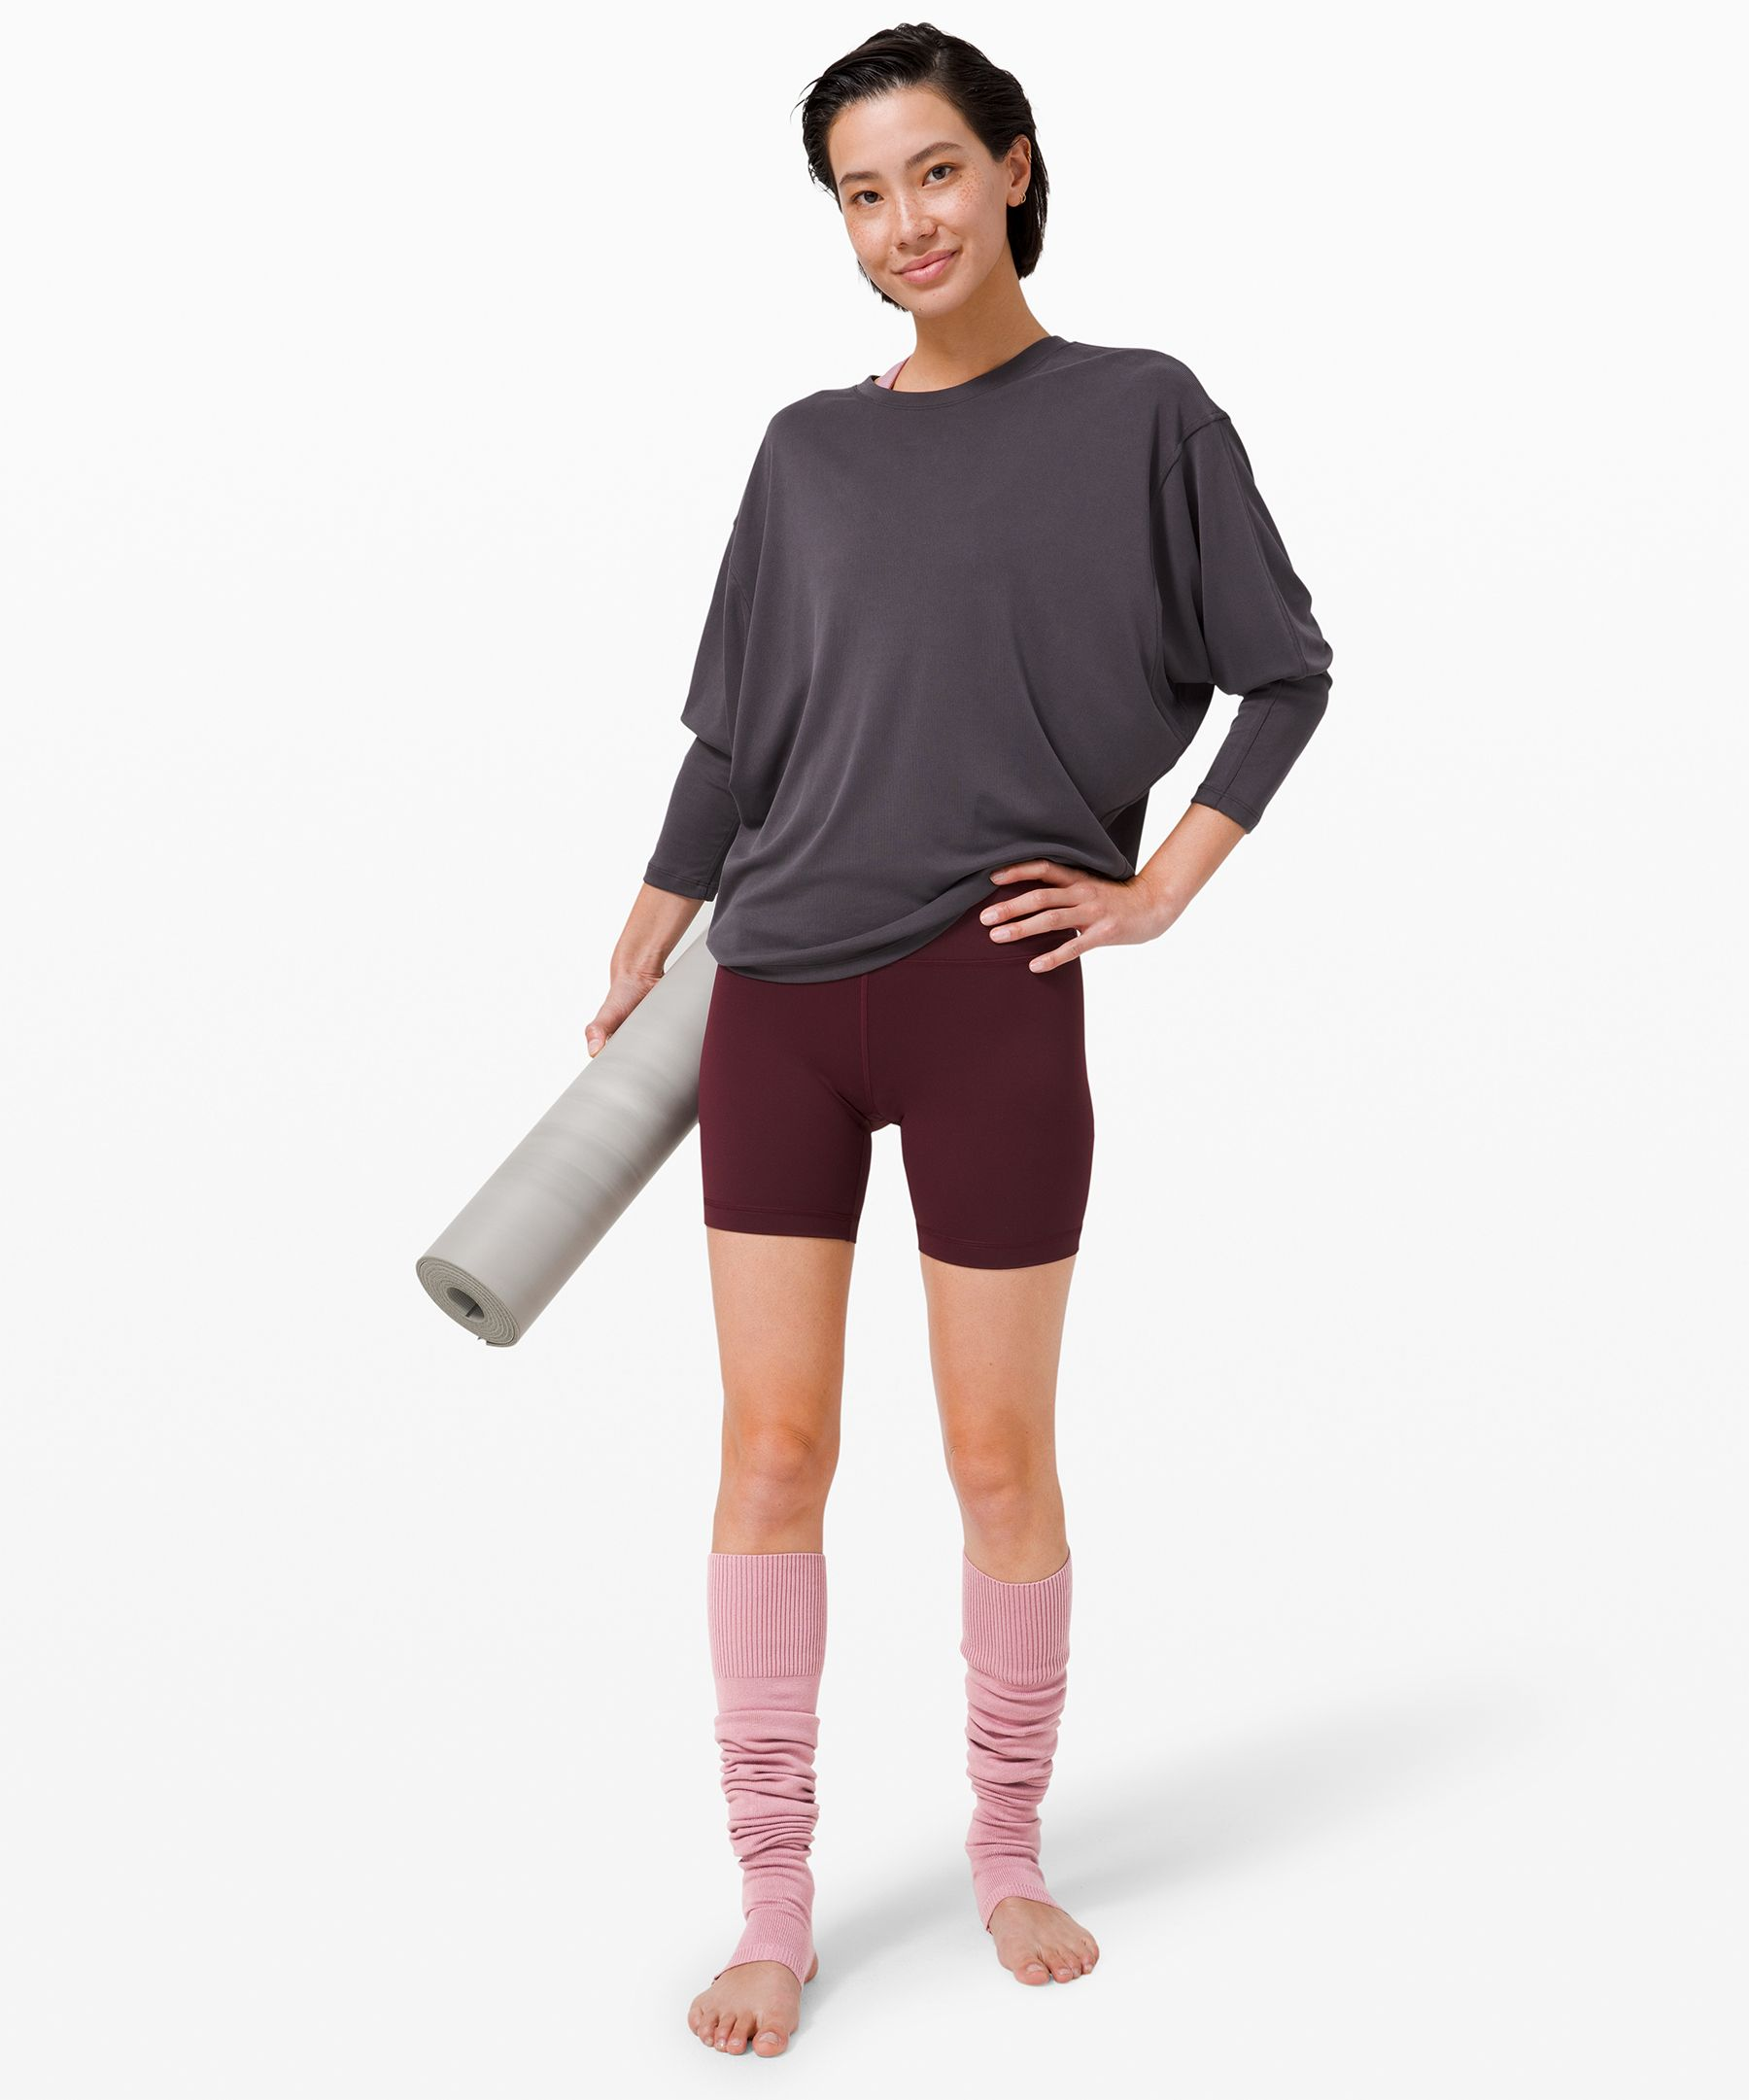 We designed these soft,  snug-fitting leg warmers to be  a perfect layer in chilly  studios. An open toe and heel  lets you grip your mat without  sliding.